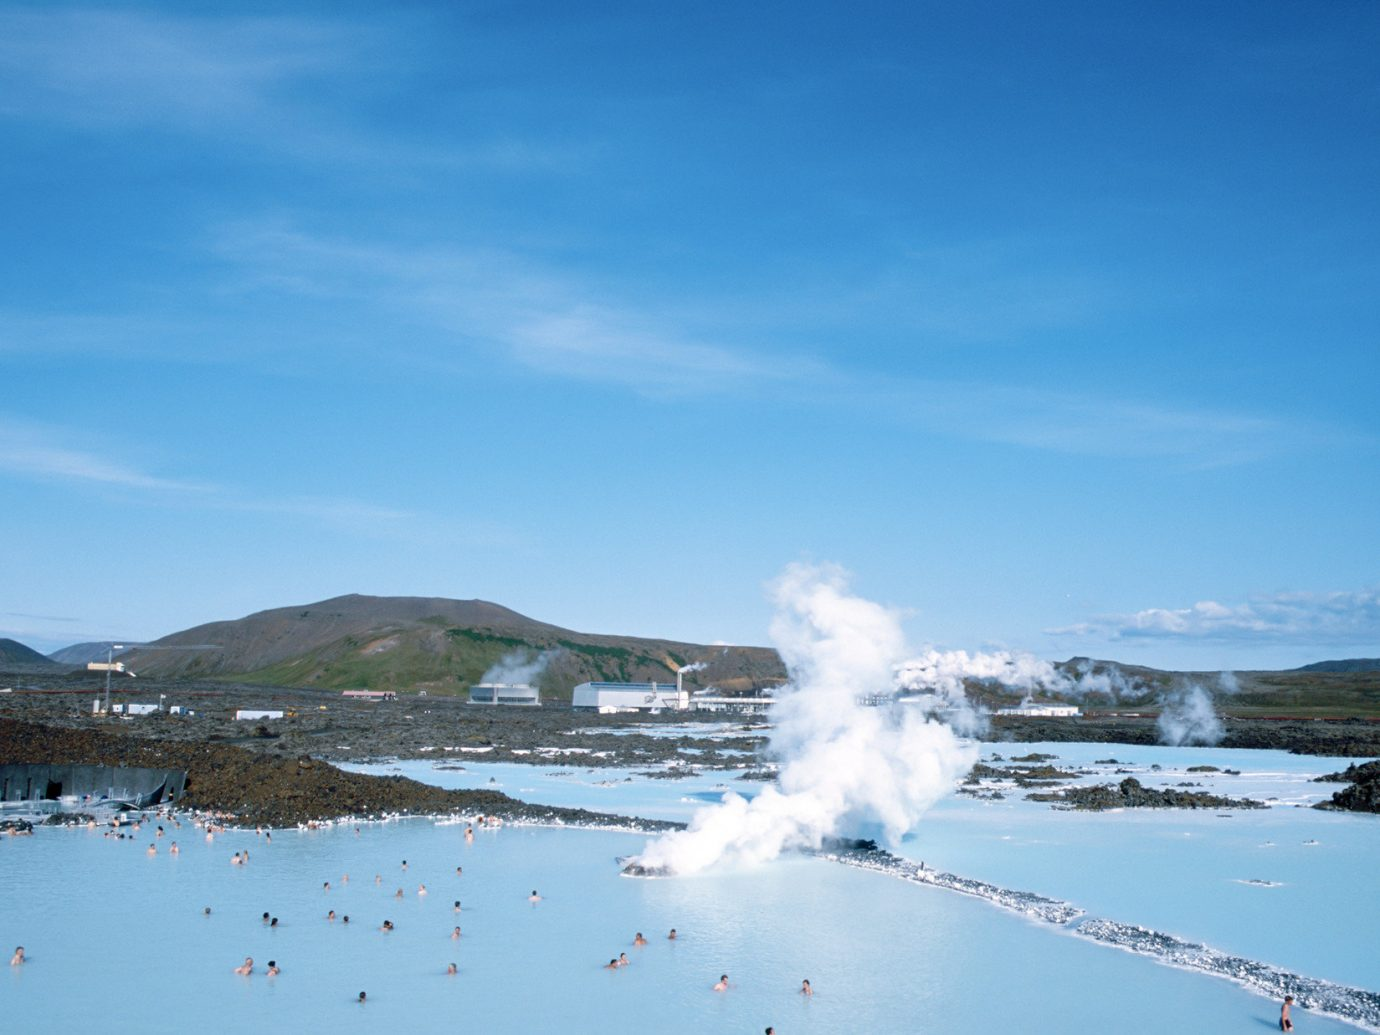 Budget Iceland Trip Ideas outdoor sky body of water Nature Sea water cloud shore Lake snow Ocean Coast ice reflection wave spring